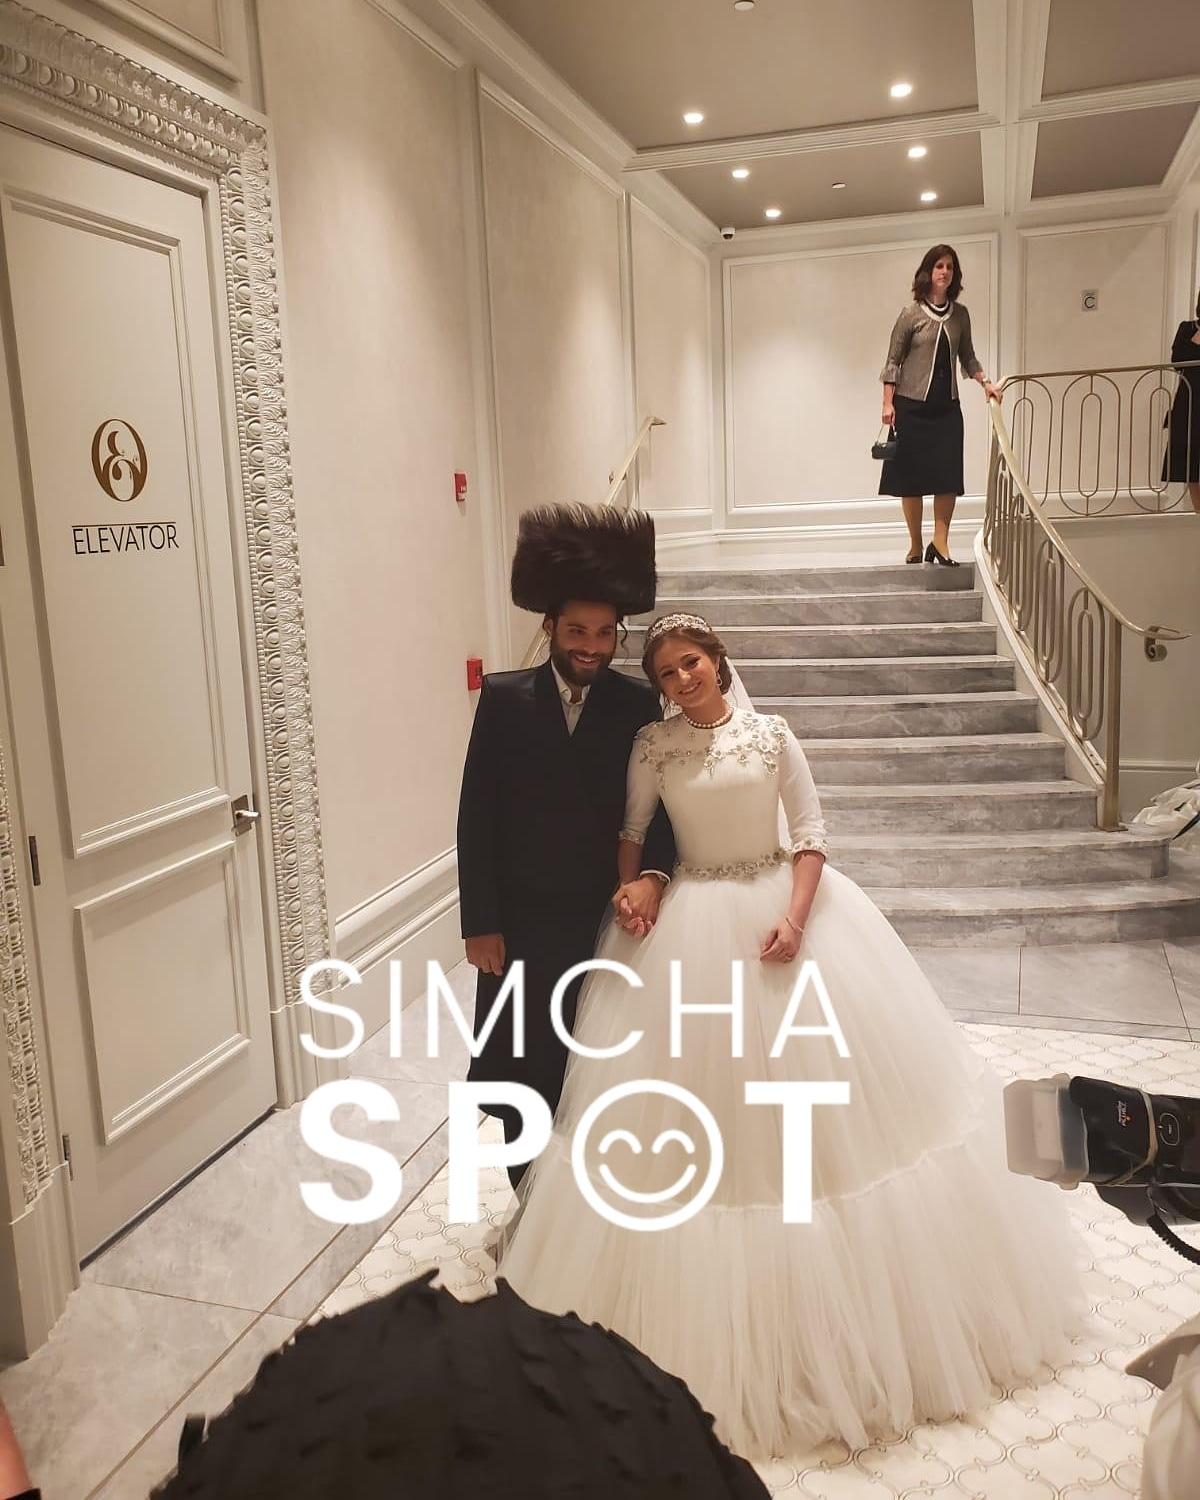 Wedding Of Tuli Lesser And Chavi Zinger Simcha Spot #simchaspot   4.8m people have watched this. wedding of tuli lesser and chavi zinger